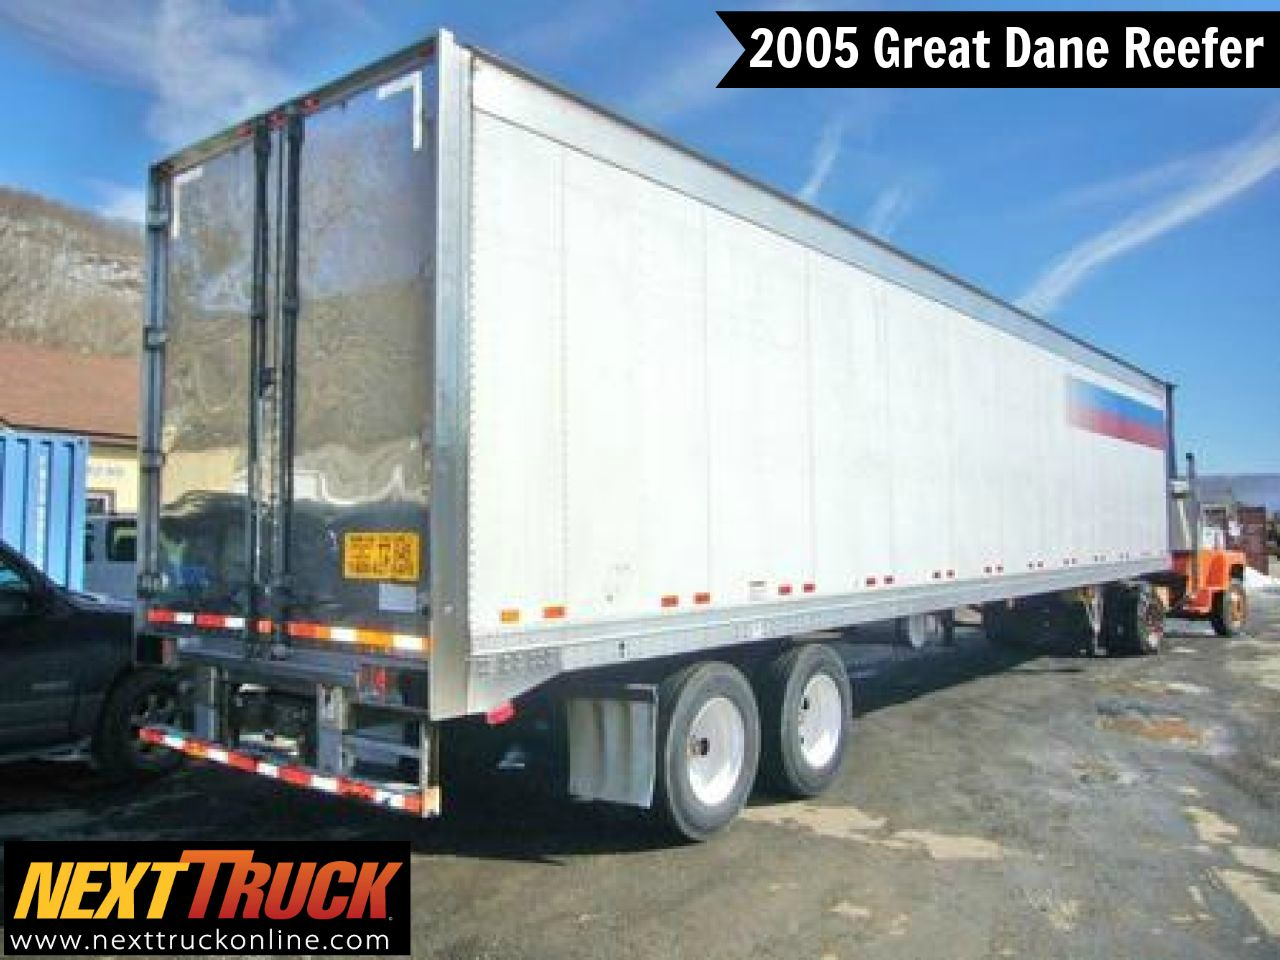 Pin by NextTruck on jobsearch Trailers for sale, Alloy